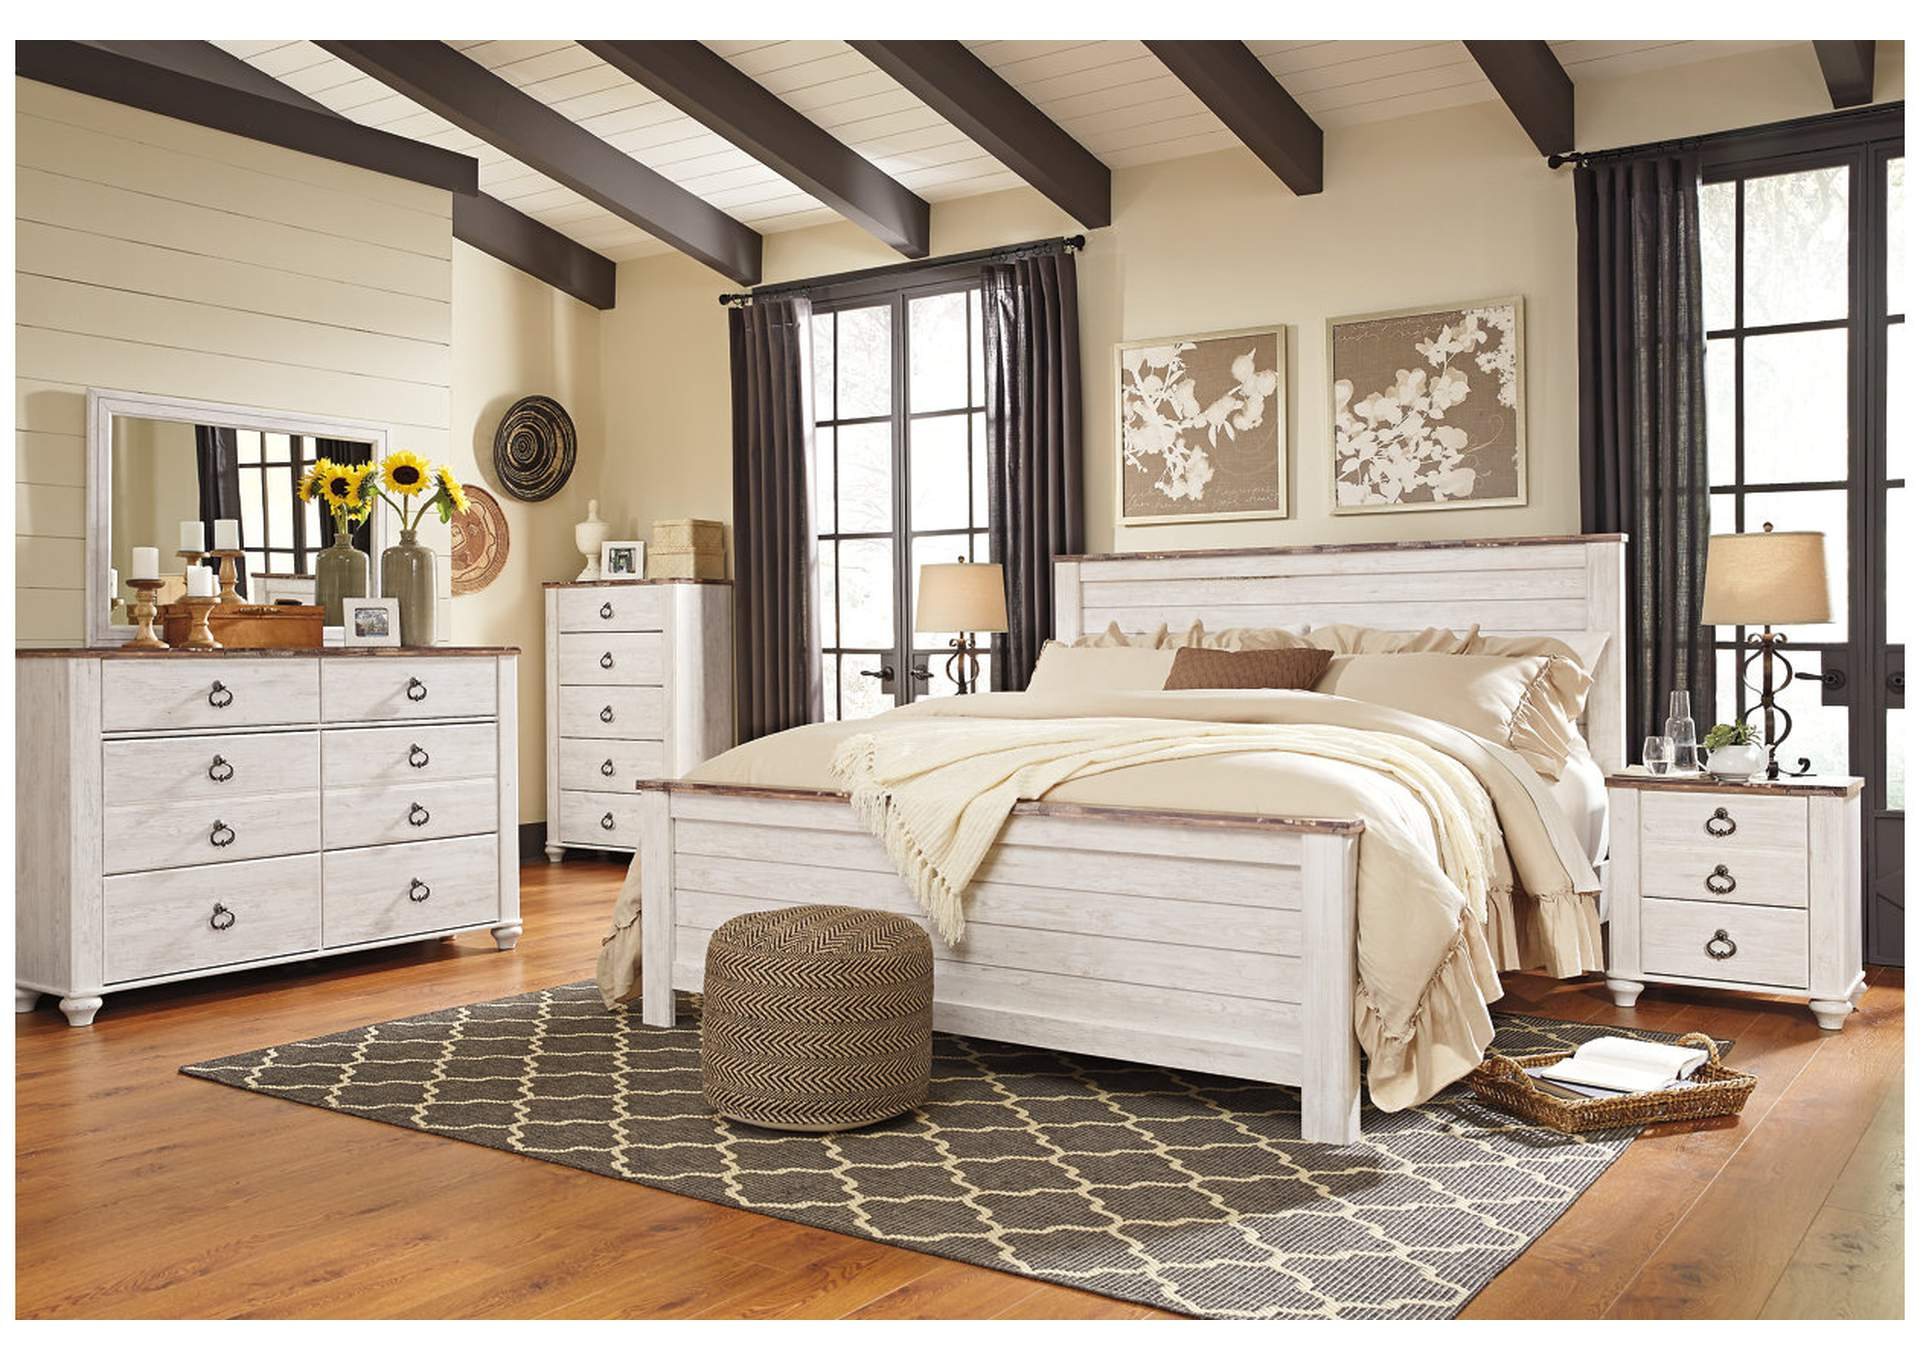 Willowton Whitewash King Panel Bed w/Dresser, Mirror & Drawer Chest,Signature Design by Ashley